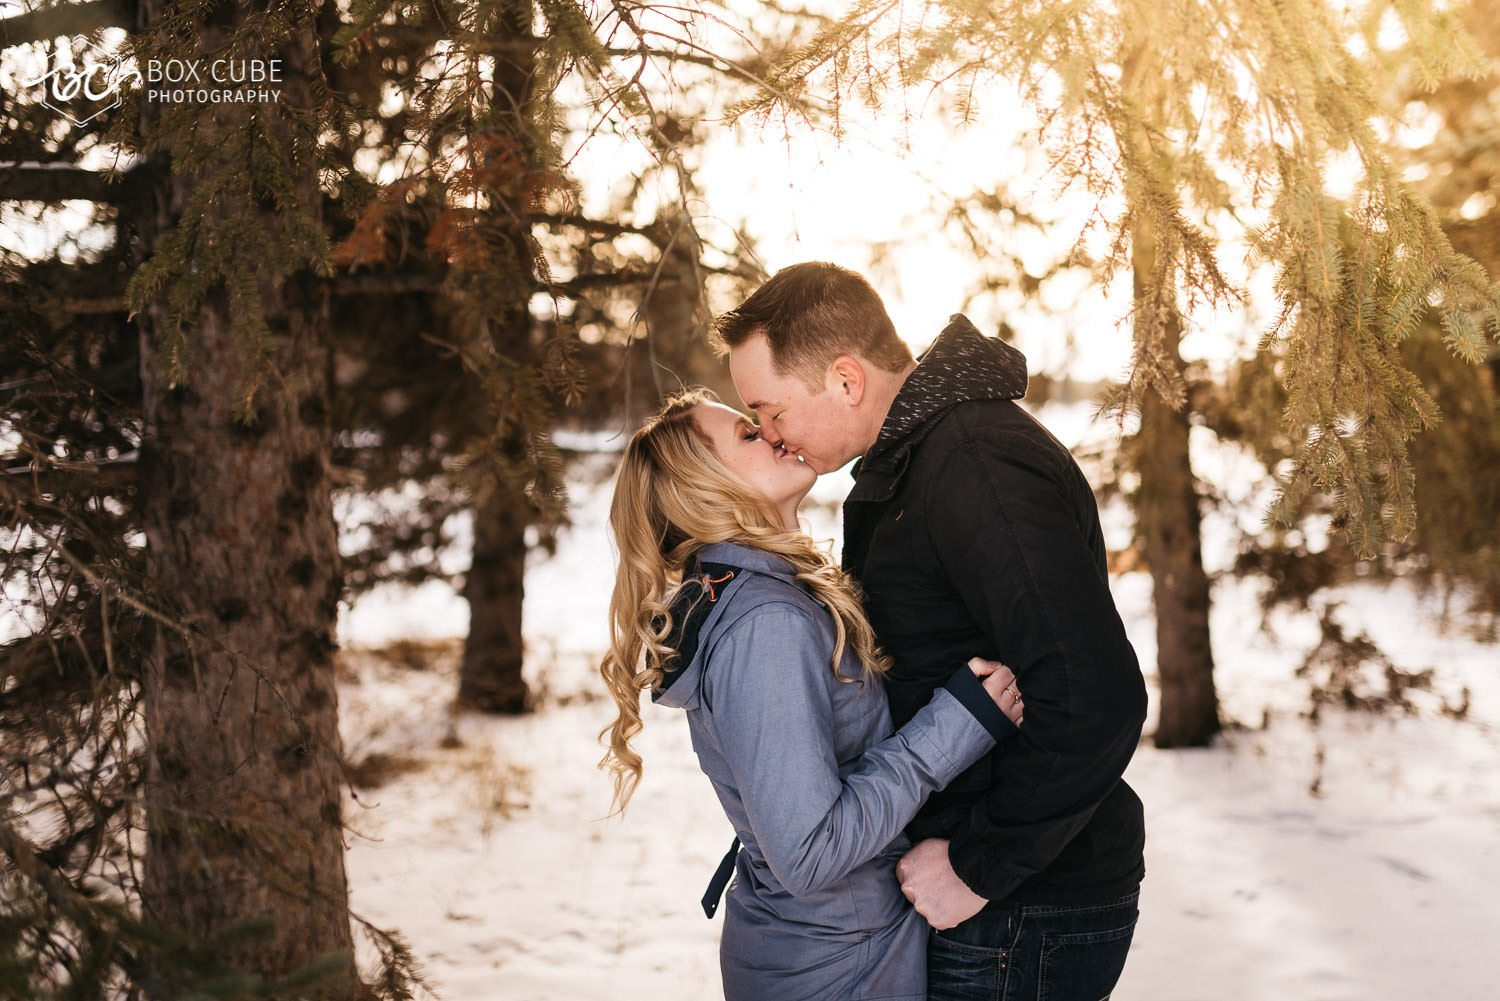 Engagement Photos at William Hawerlak Park by Box Cube Photography